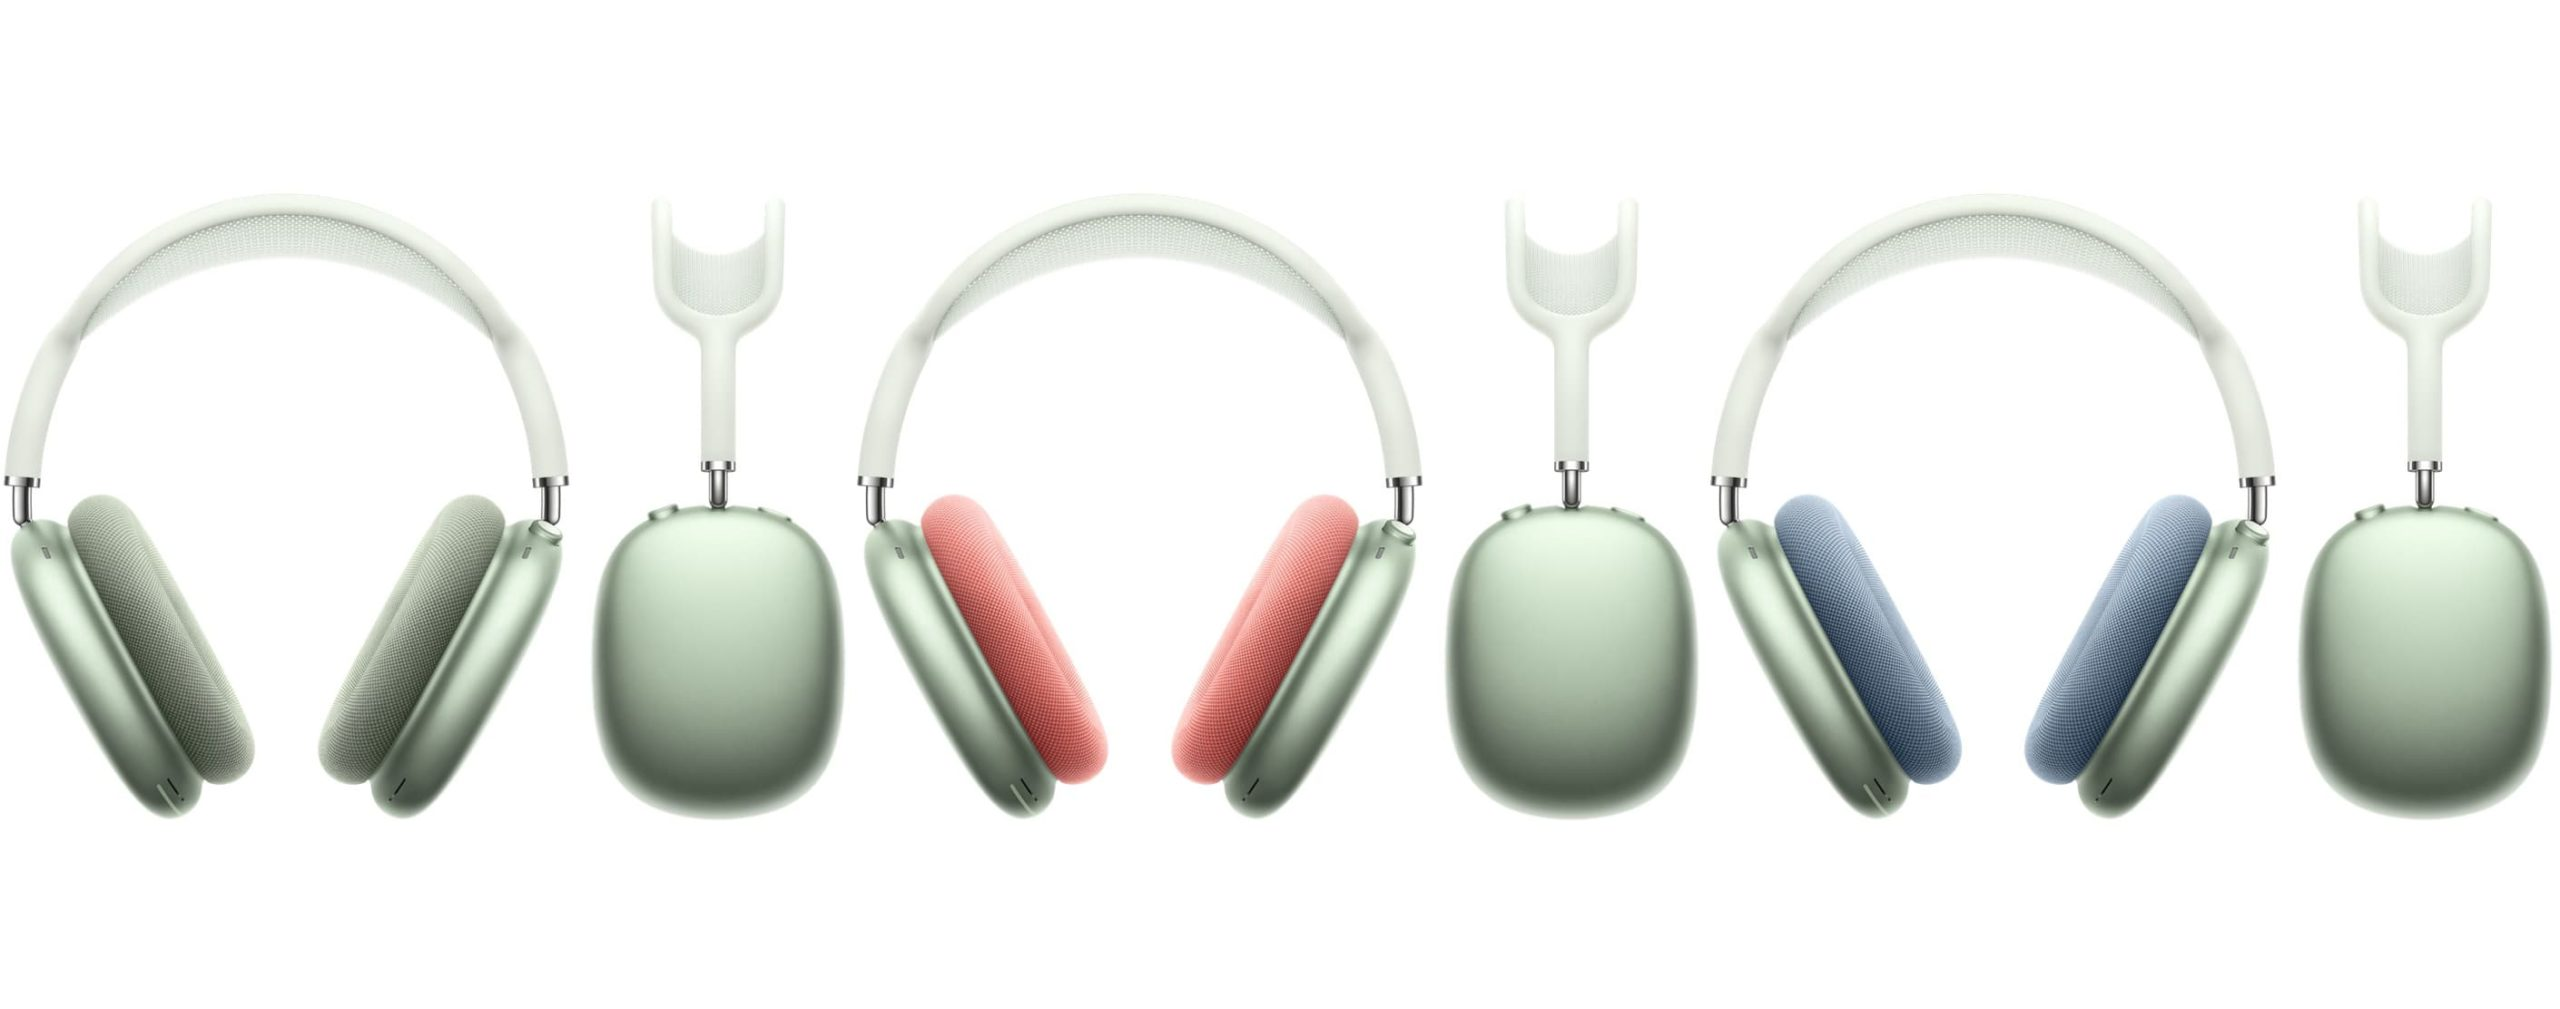 AirPods Max 綠色搭配1